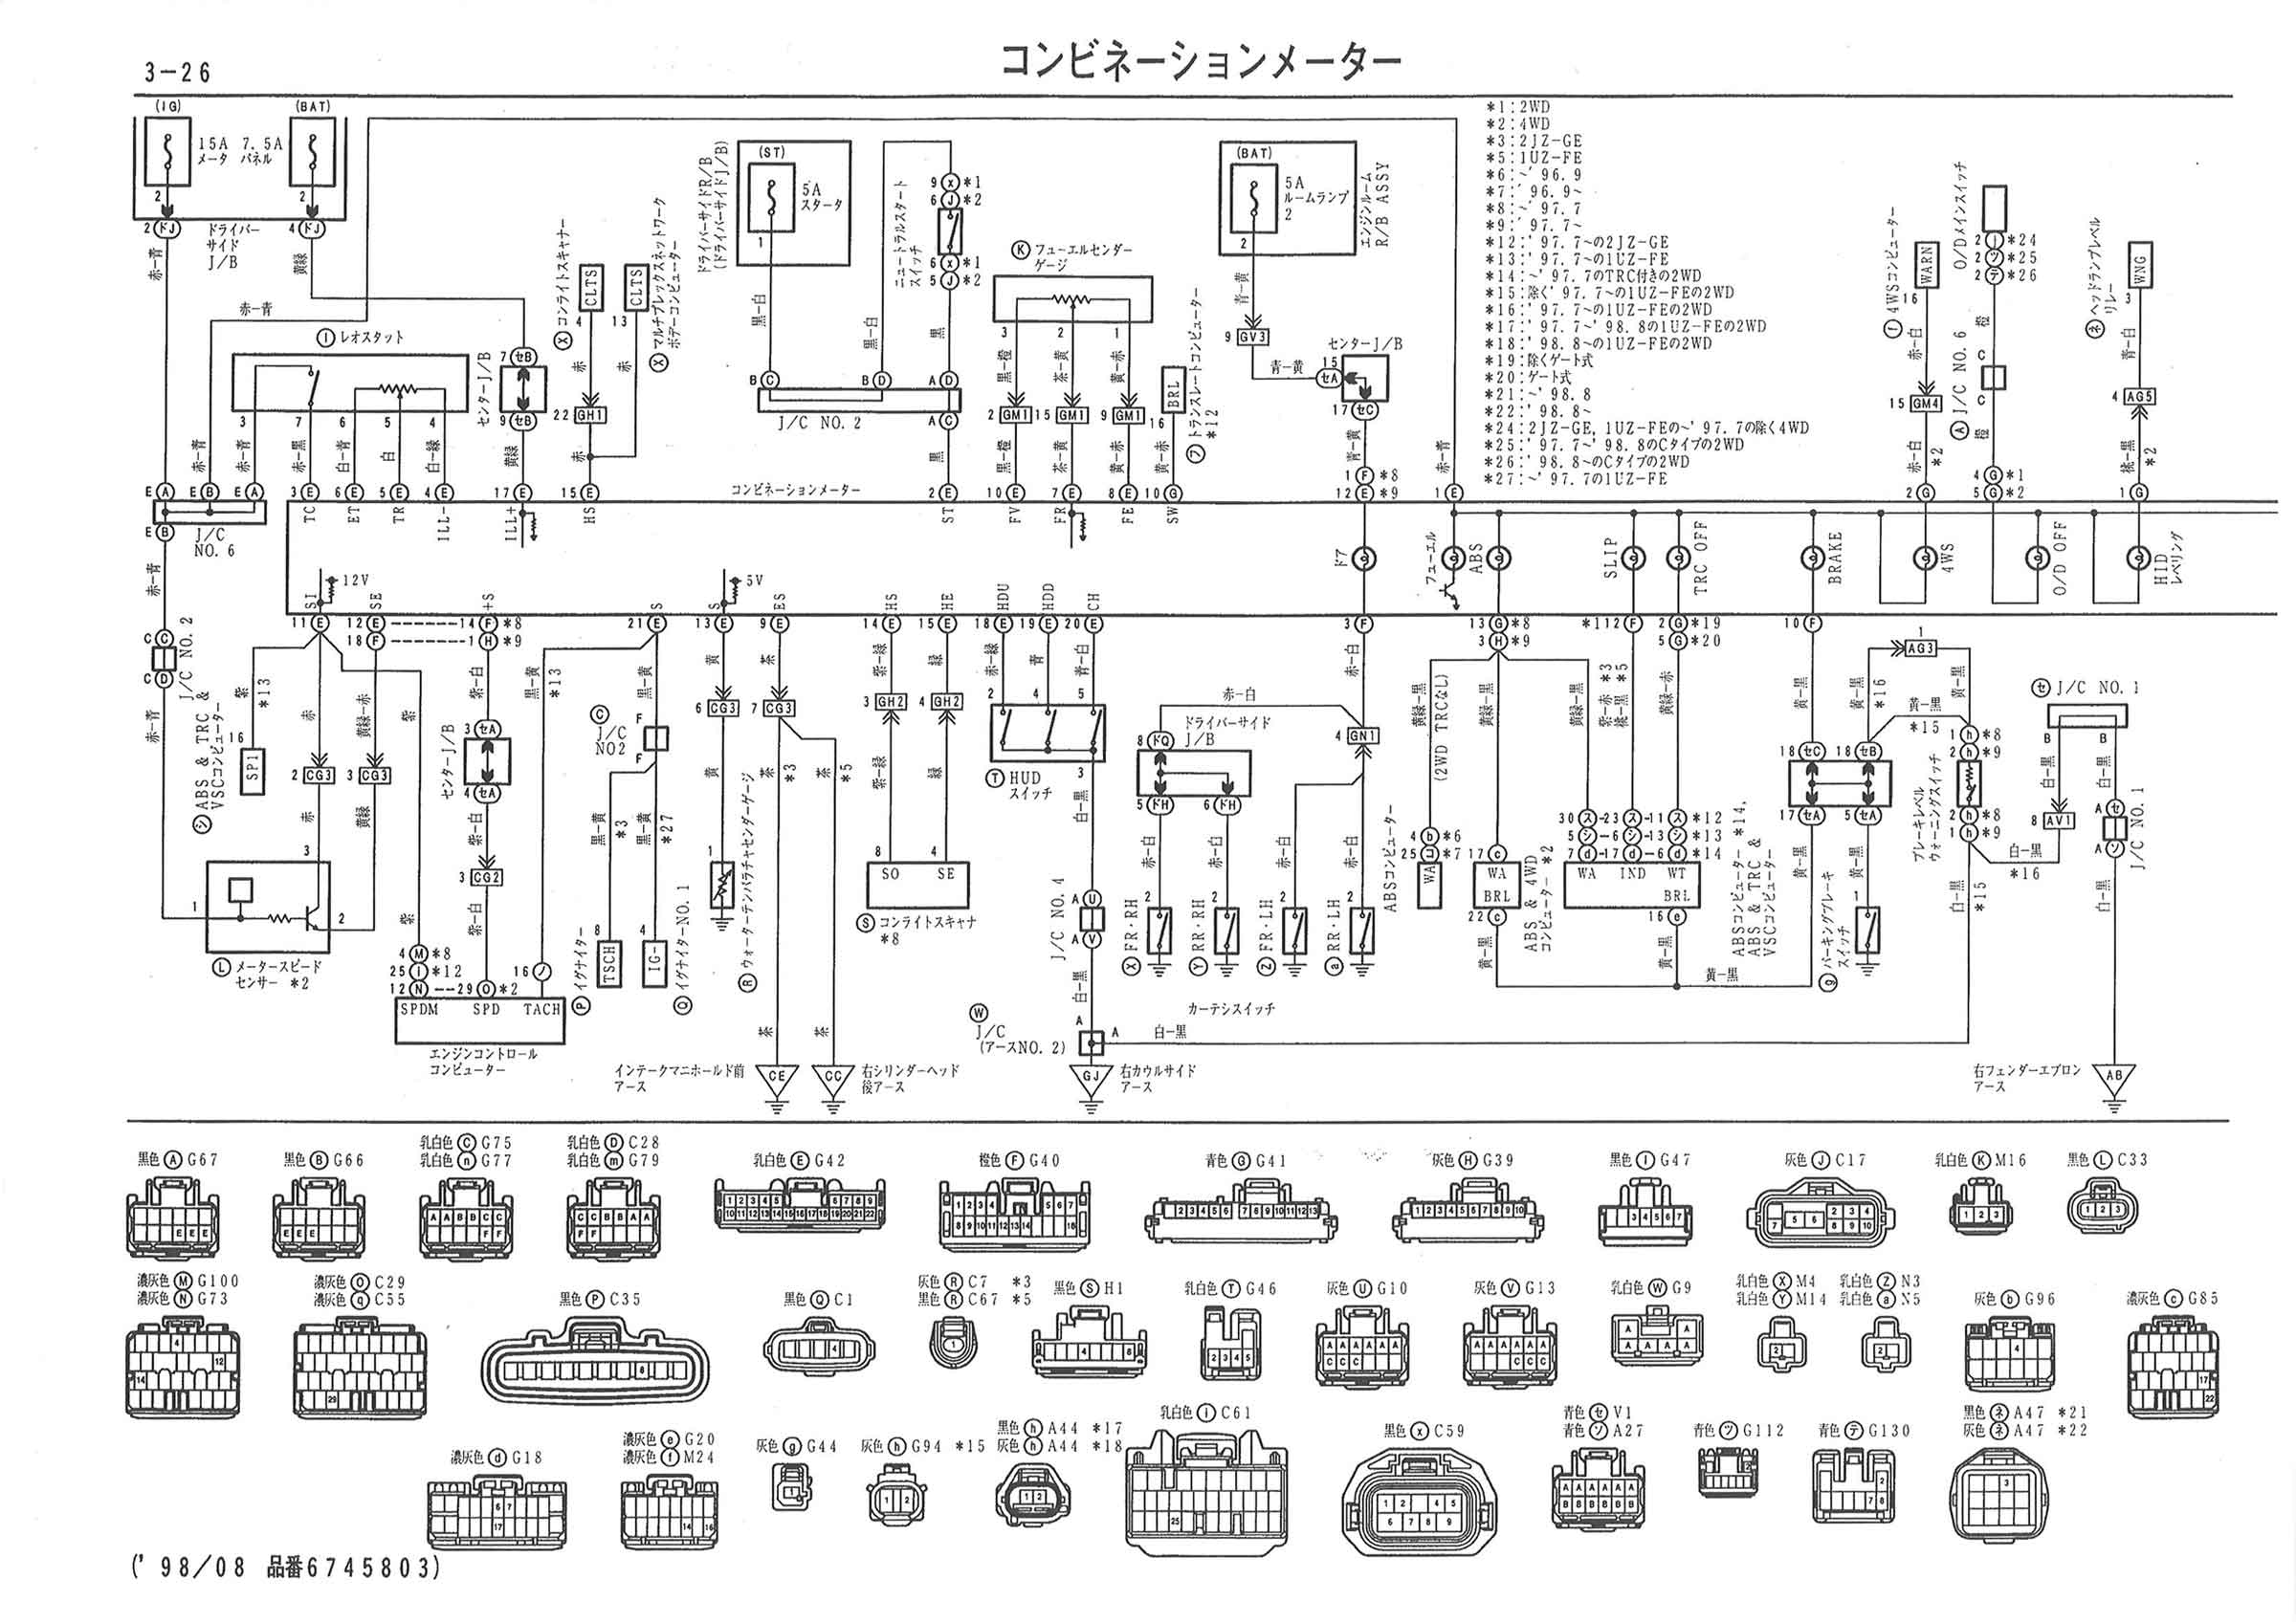 2JZ GE VVT i 10 ge vvt i 10 2jz ge wiring diagram pdf at edmiracle.co